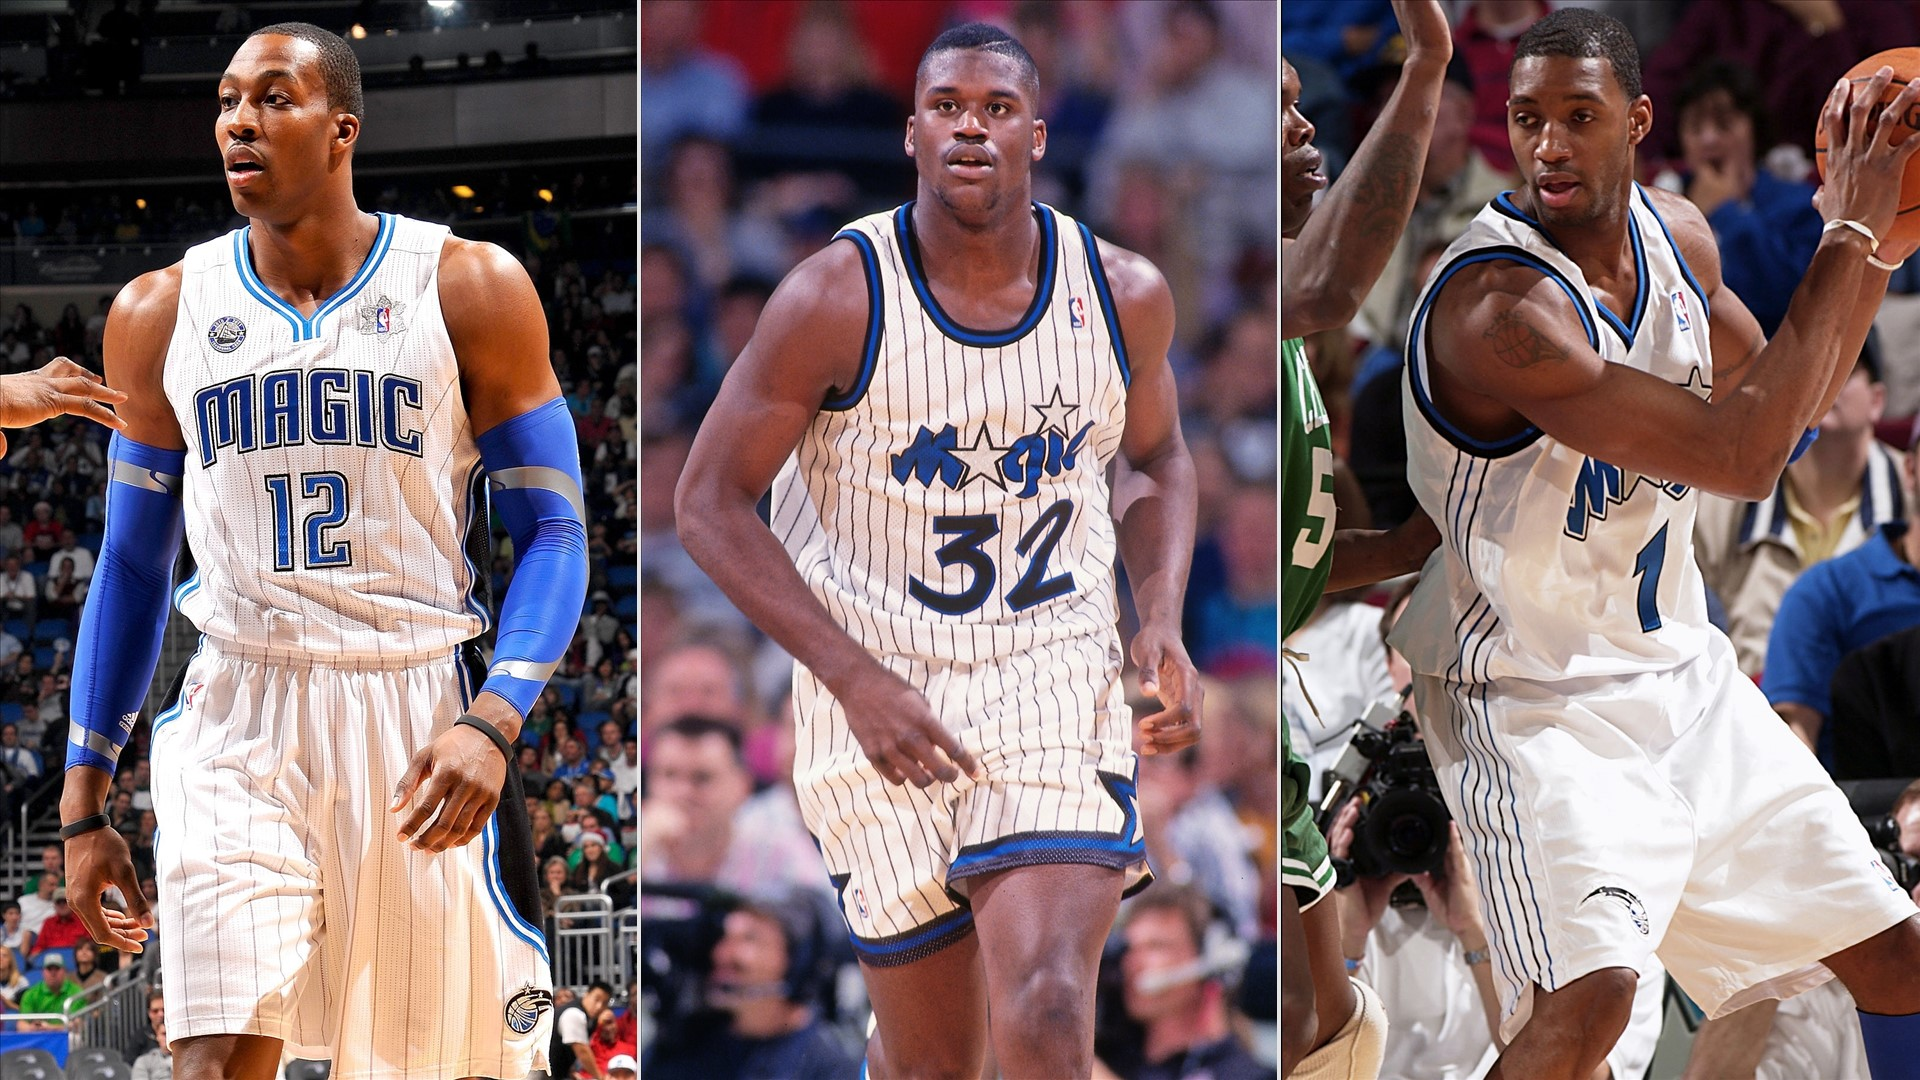 Franchise fantasy draft for the best all-time Orlando Magic team